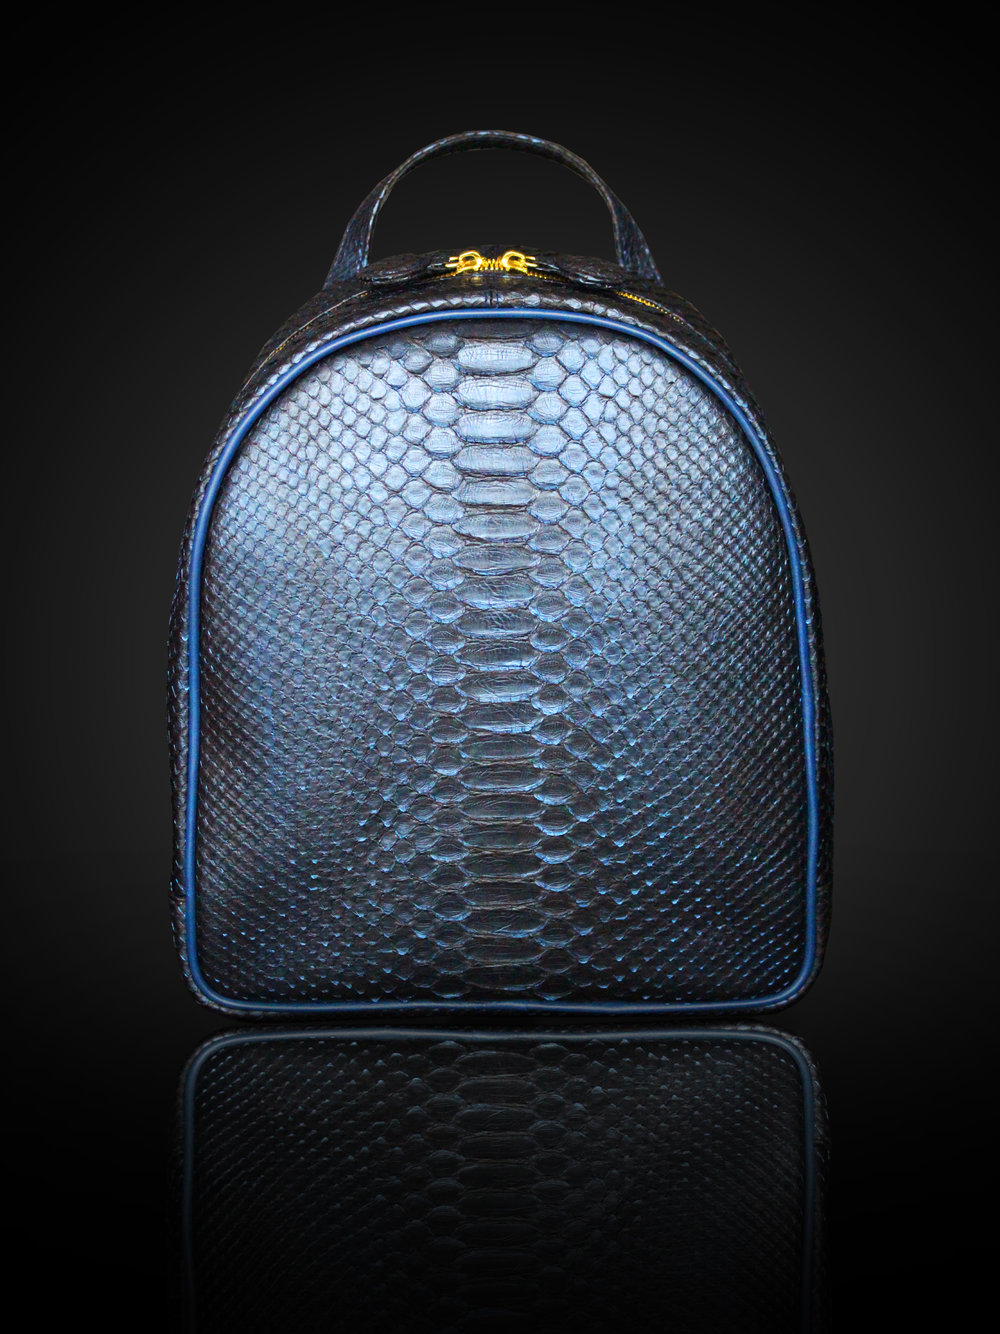 Metallic blue python packpack